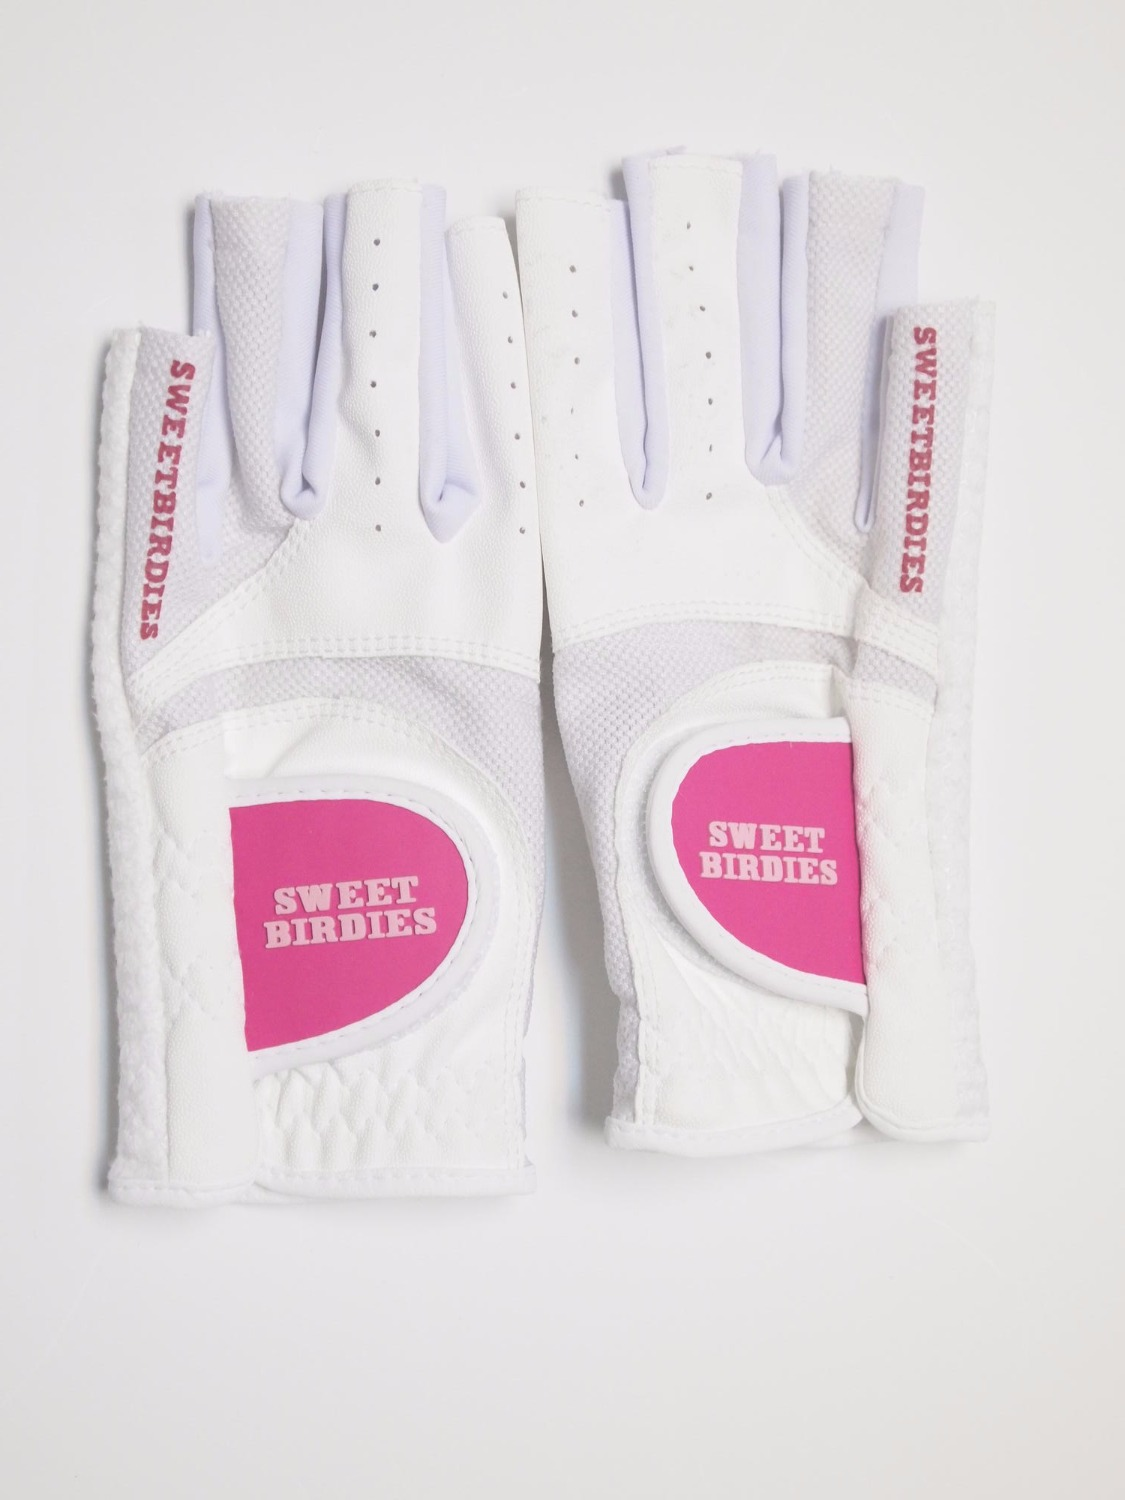 Sweetbirdies Open-fingers Gloves